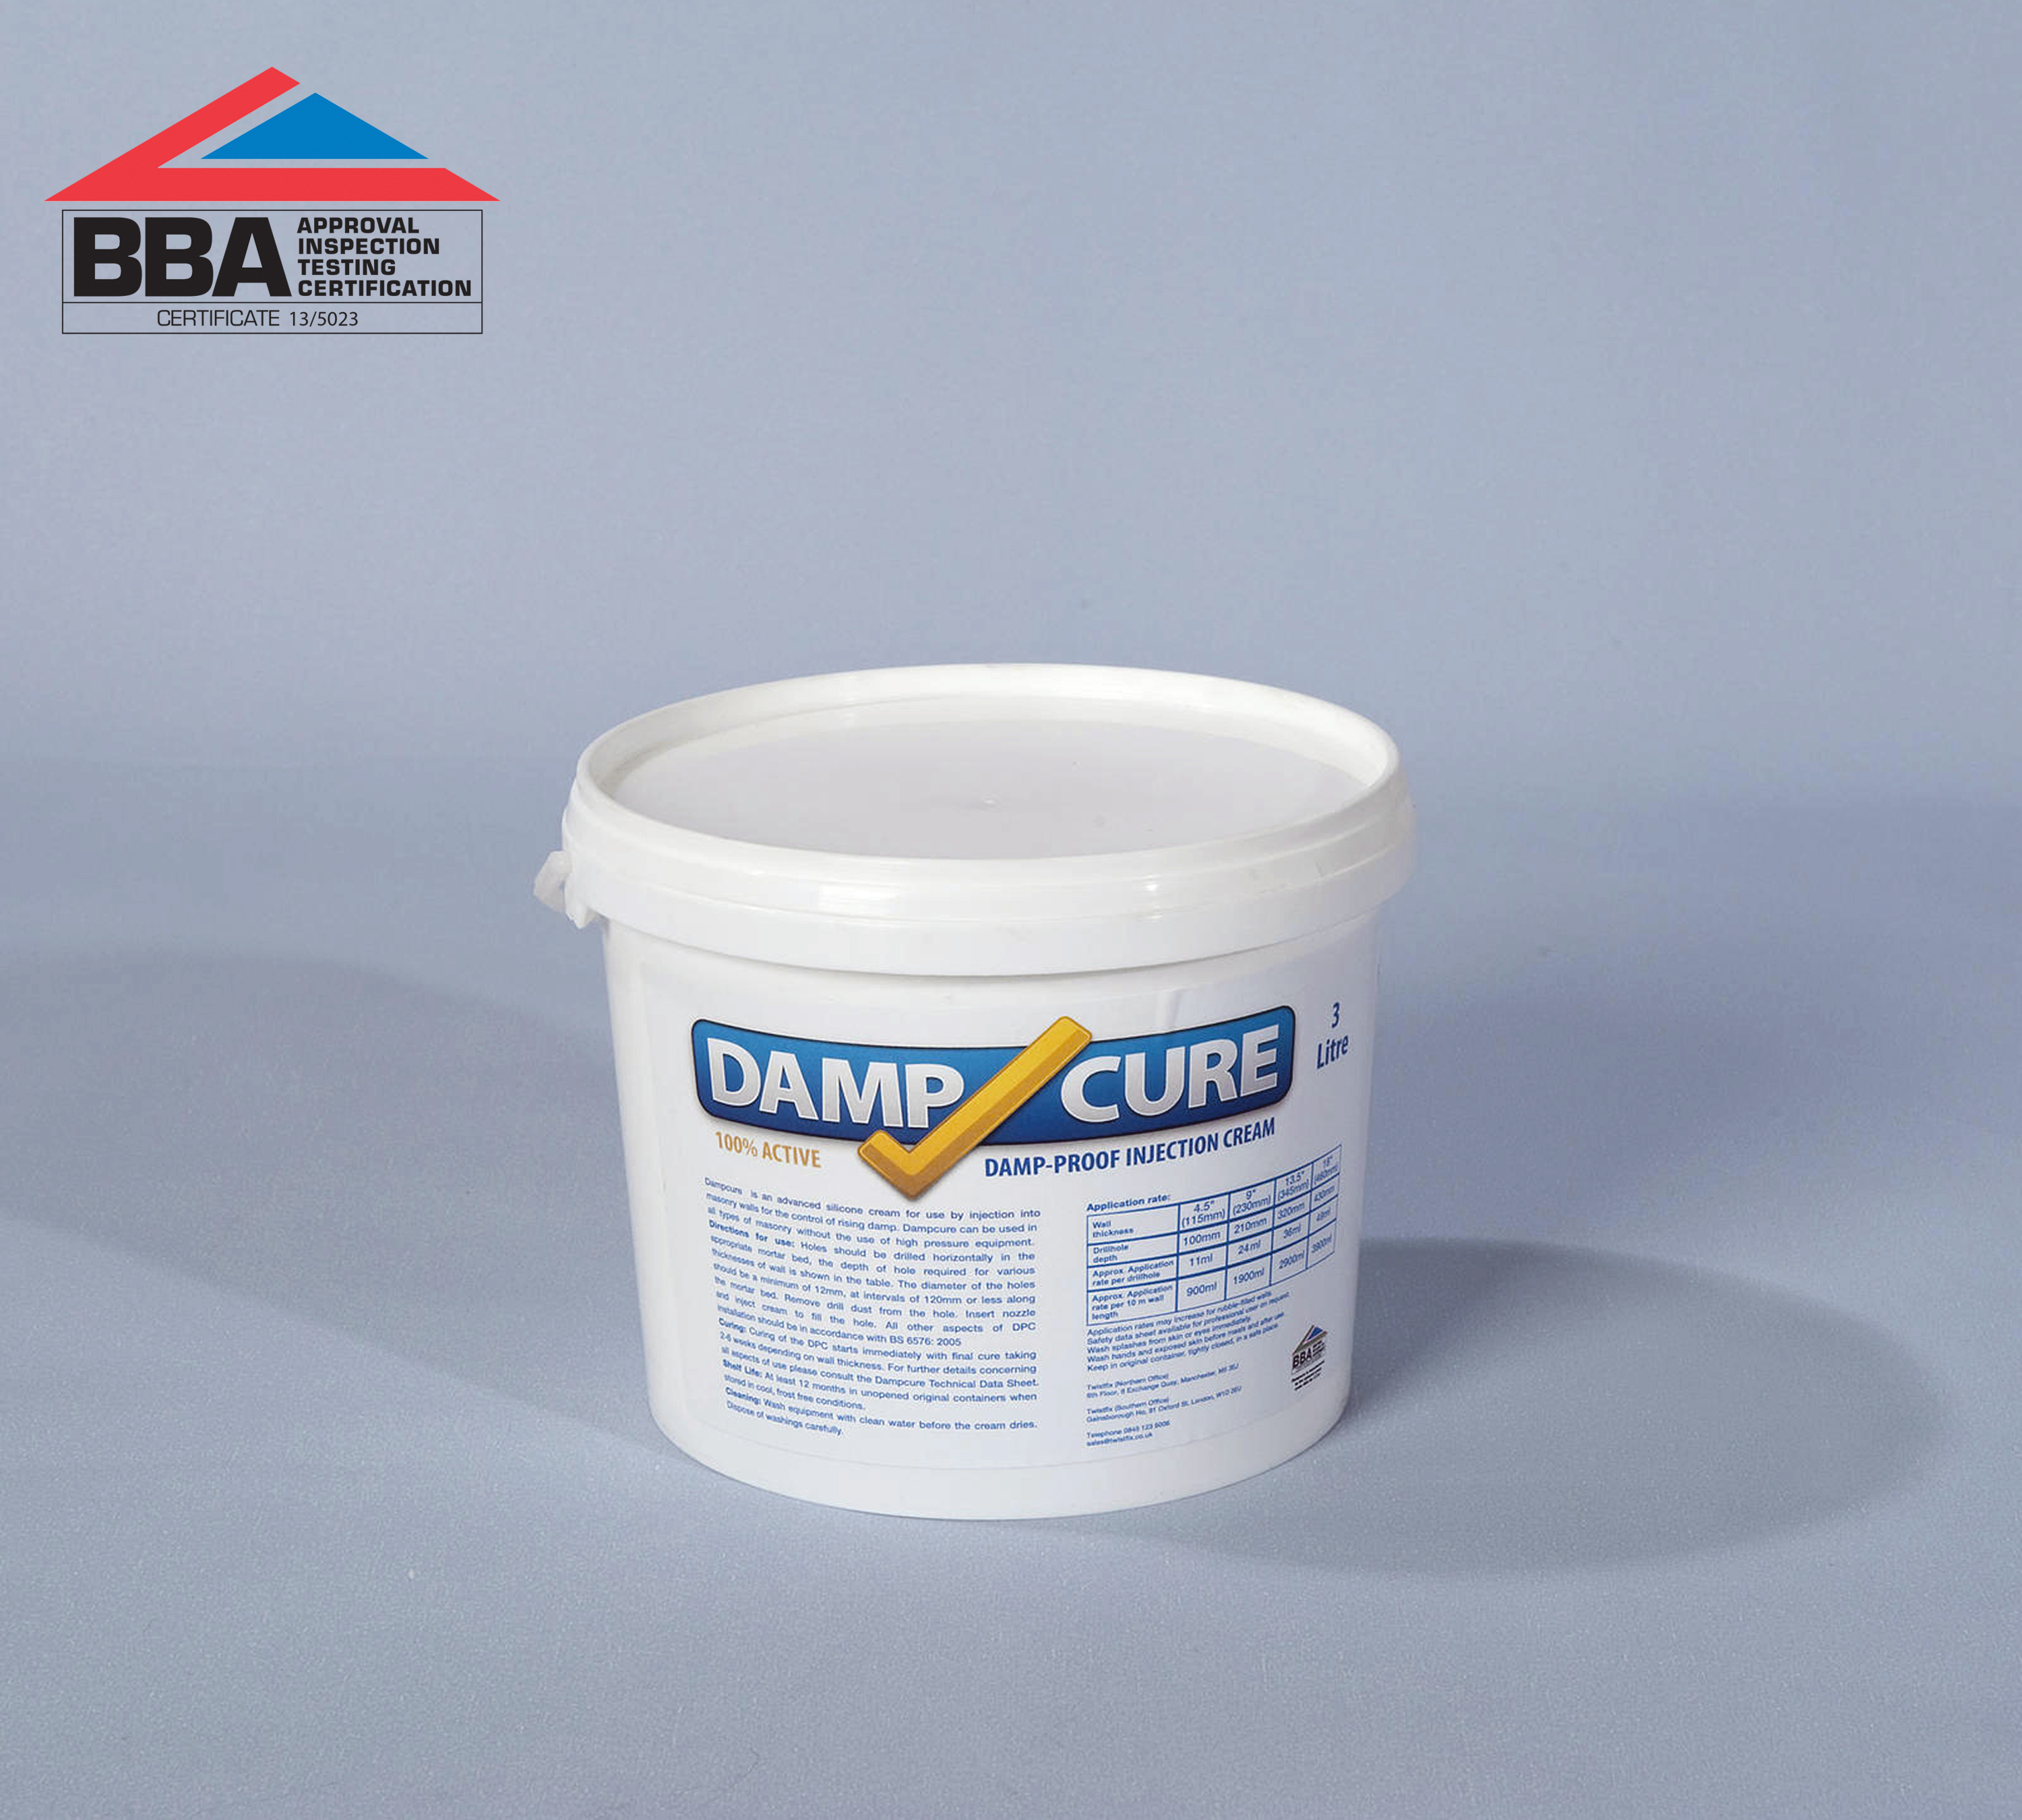 Rising Damp Treatment Damp-Cure 3000